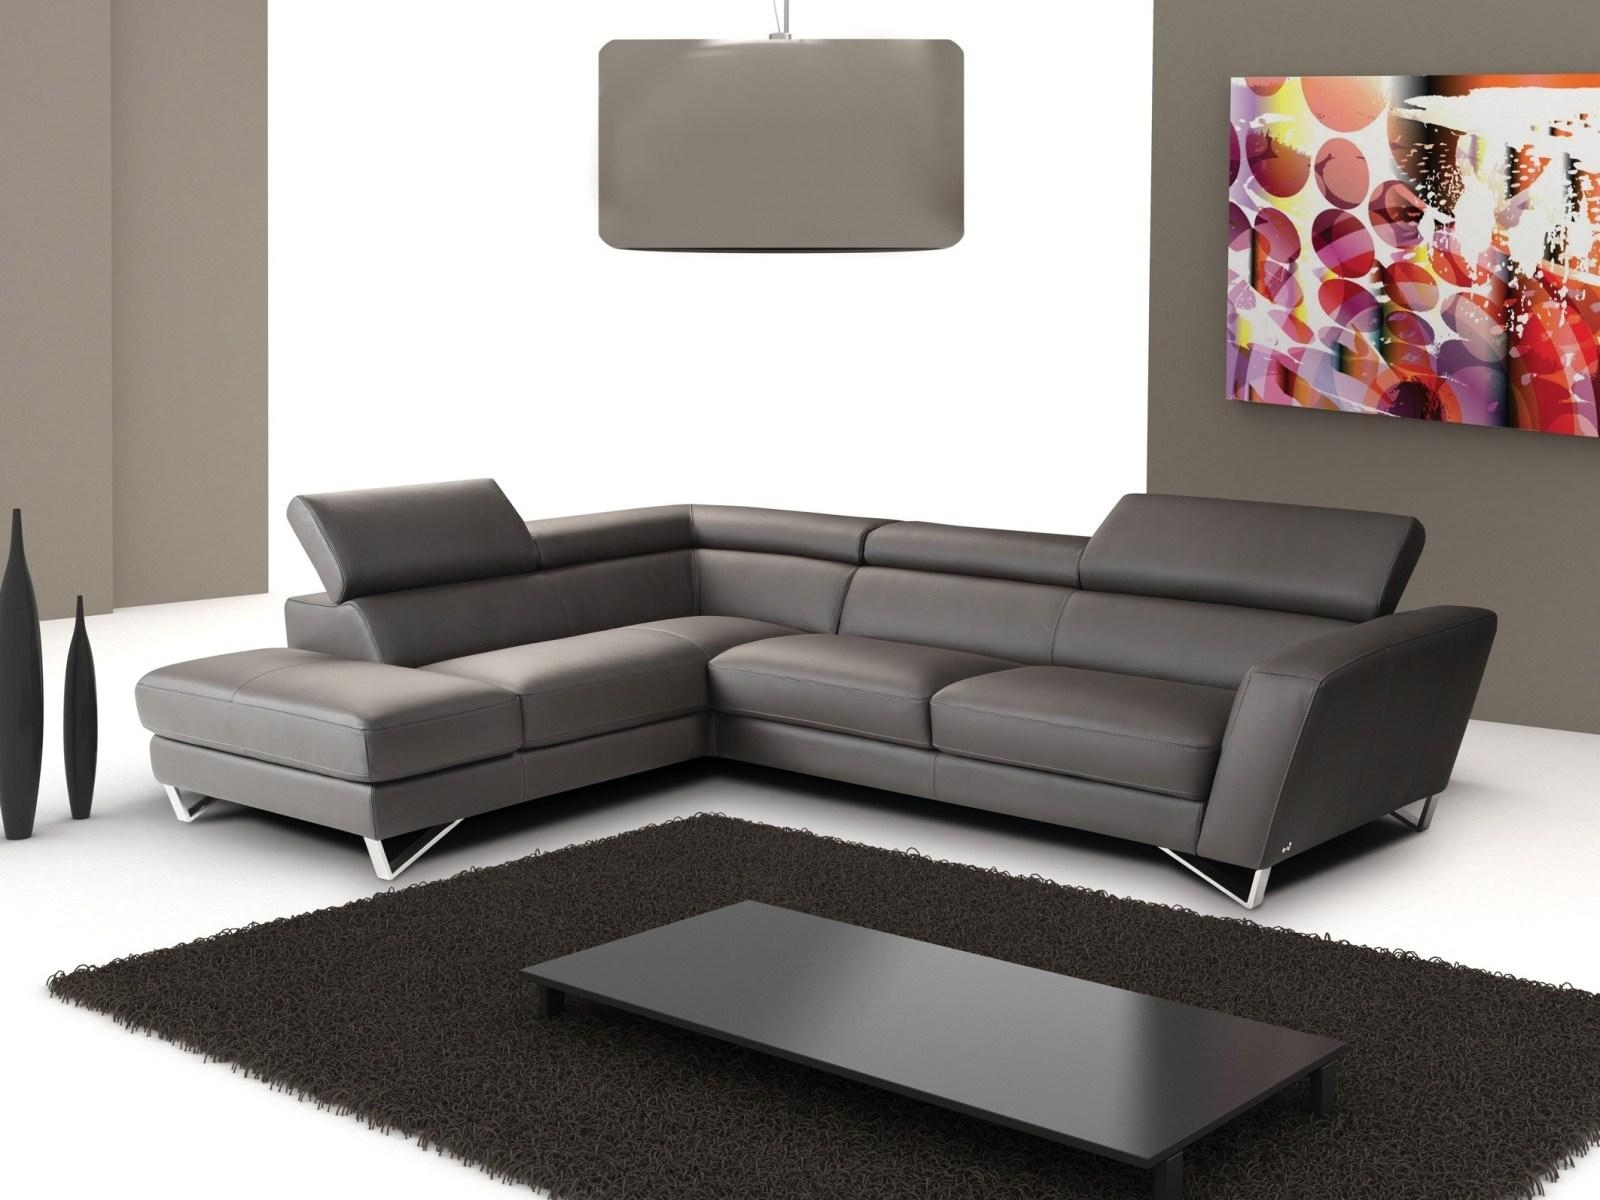 Sofas Center : Small Size Sofa Trend For Your Sofas And Couches With Regard To Sofa Trend (Image 12 of 20)